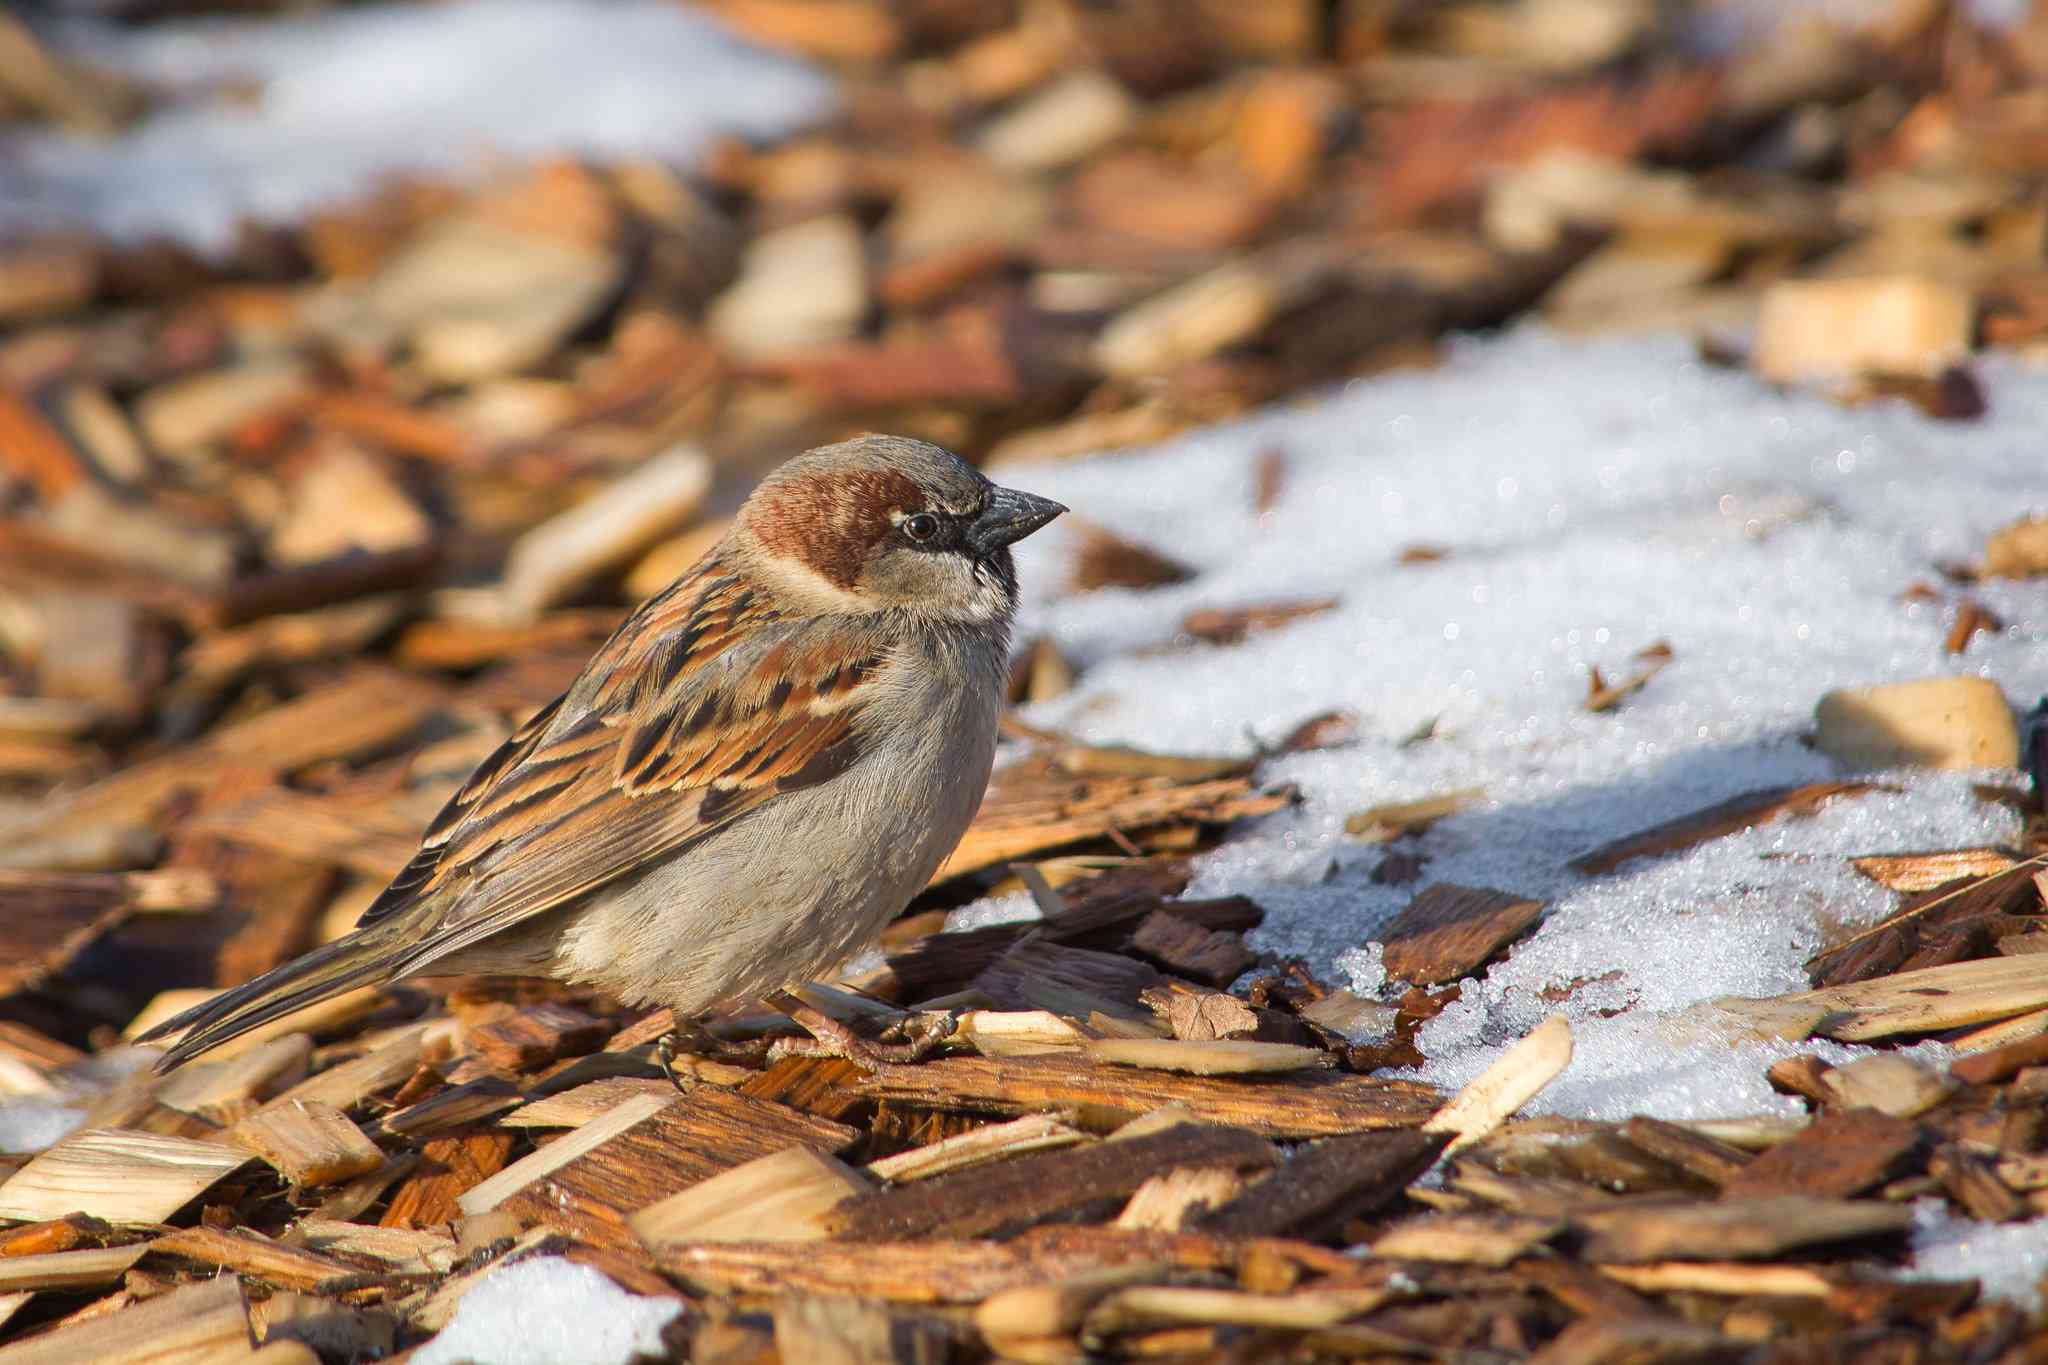 Sparrow sitting on the mulch-covered ground with some patches of snow